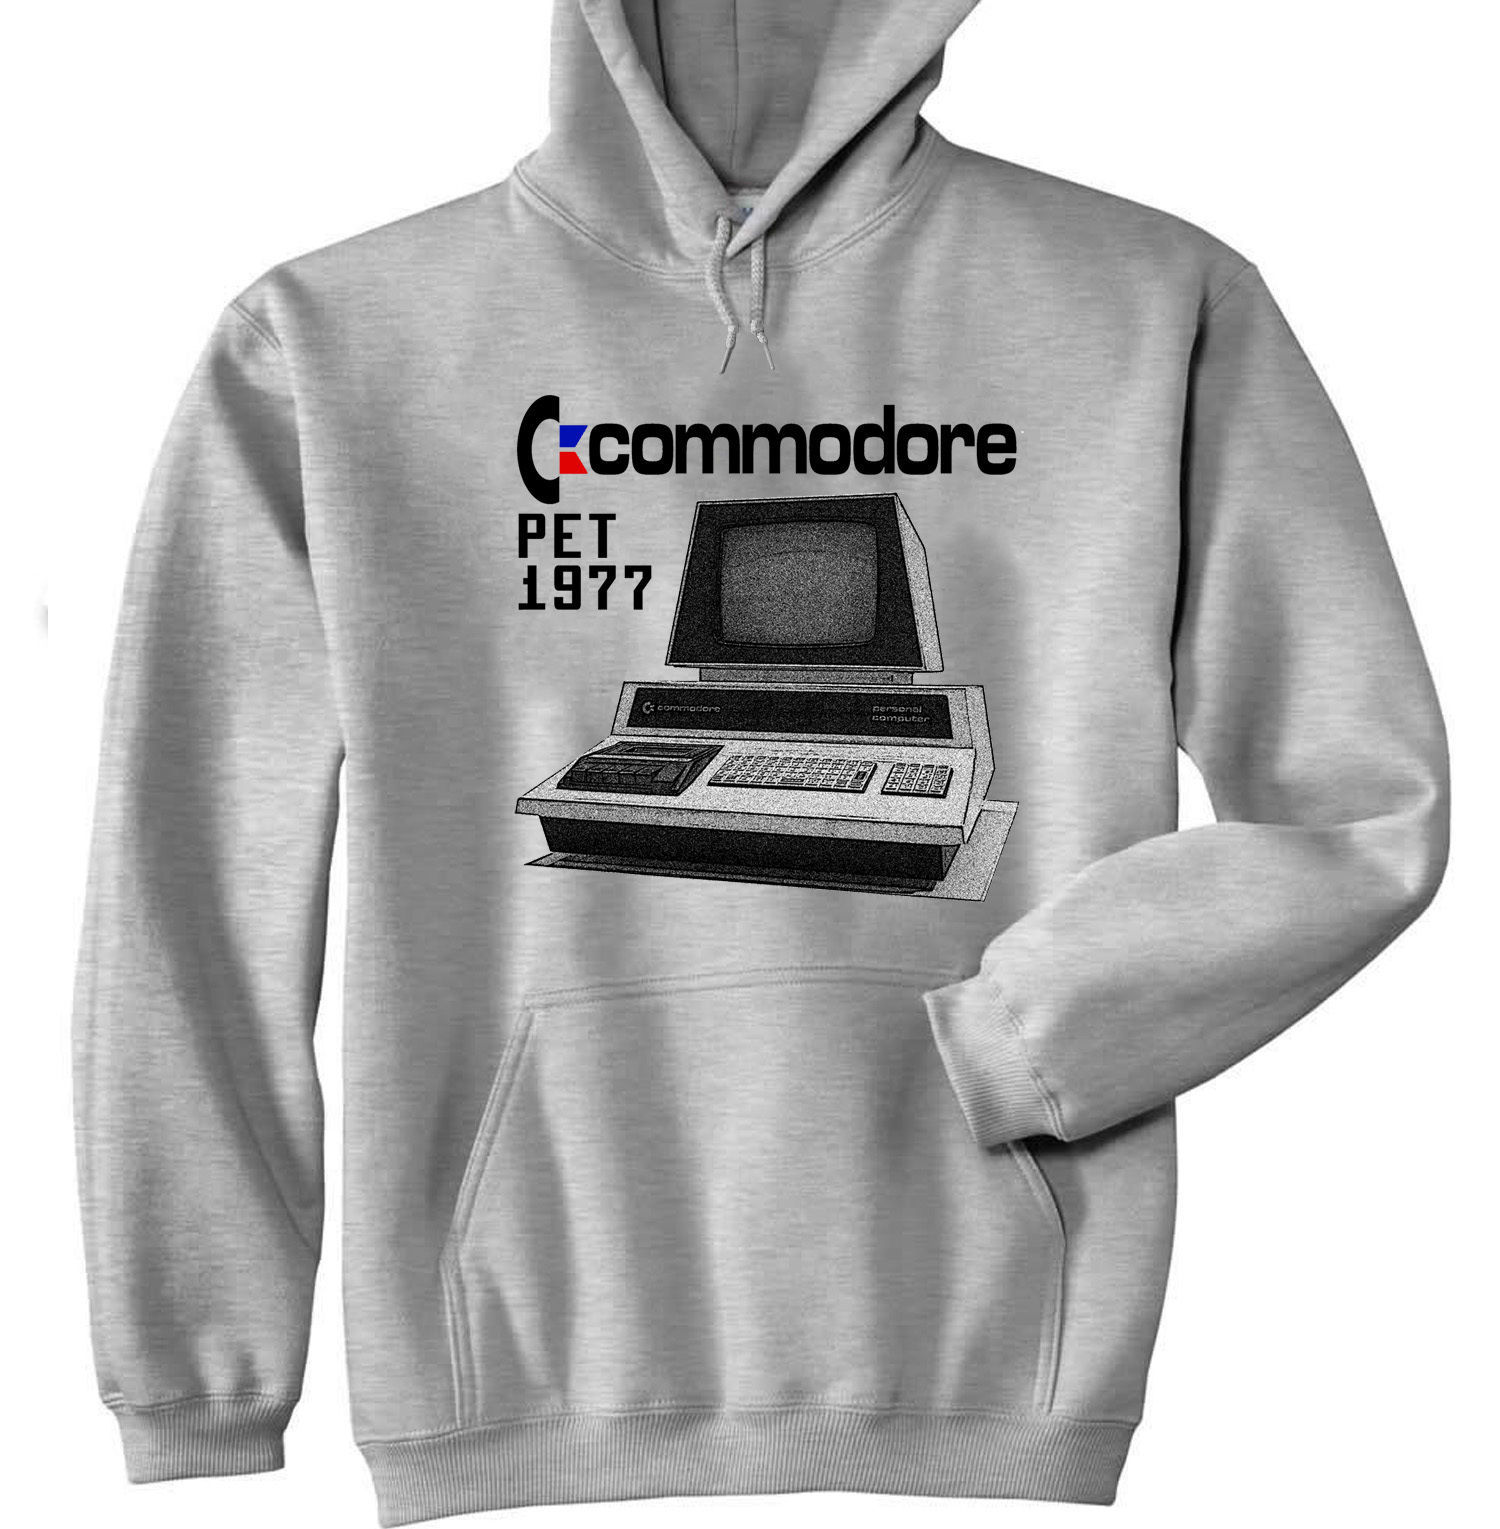 Primary image for COMMODORE PET 1977 - NEW COTTON GREY HOODIE - ALL SIZES IN STOCK